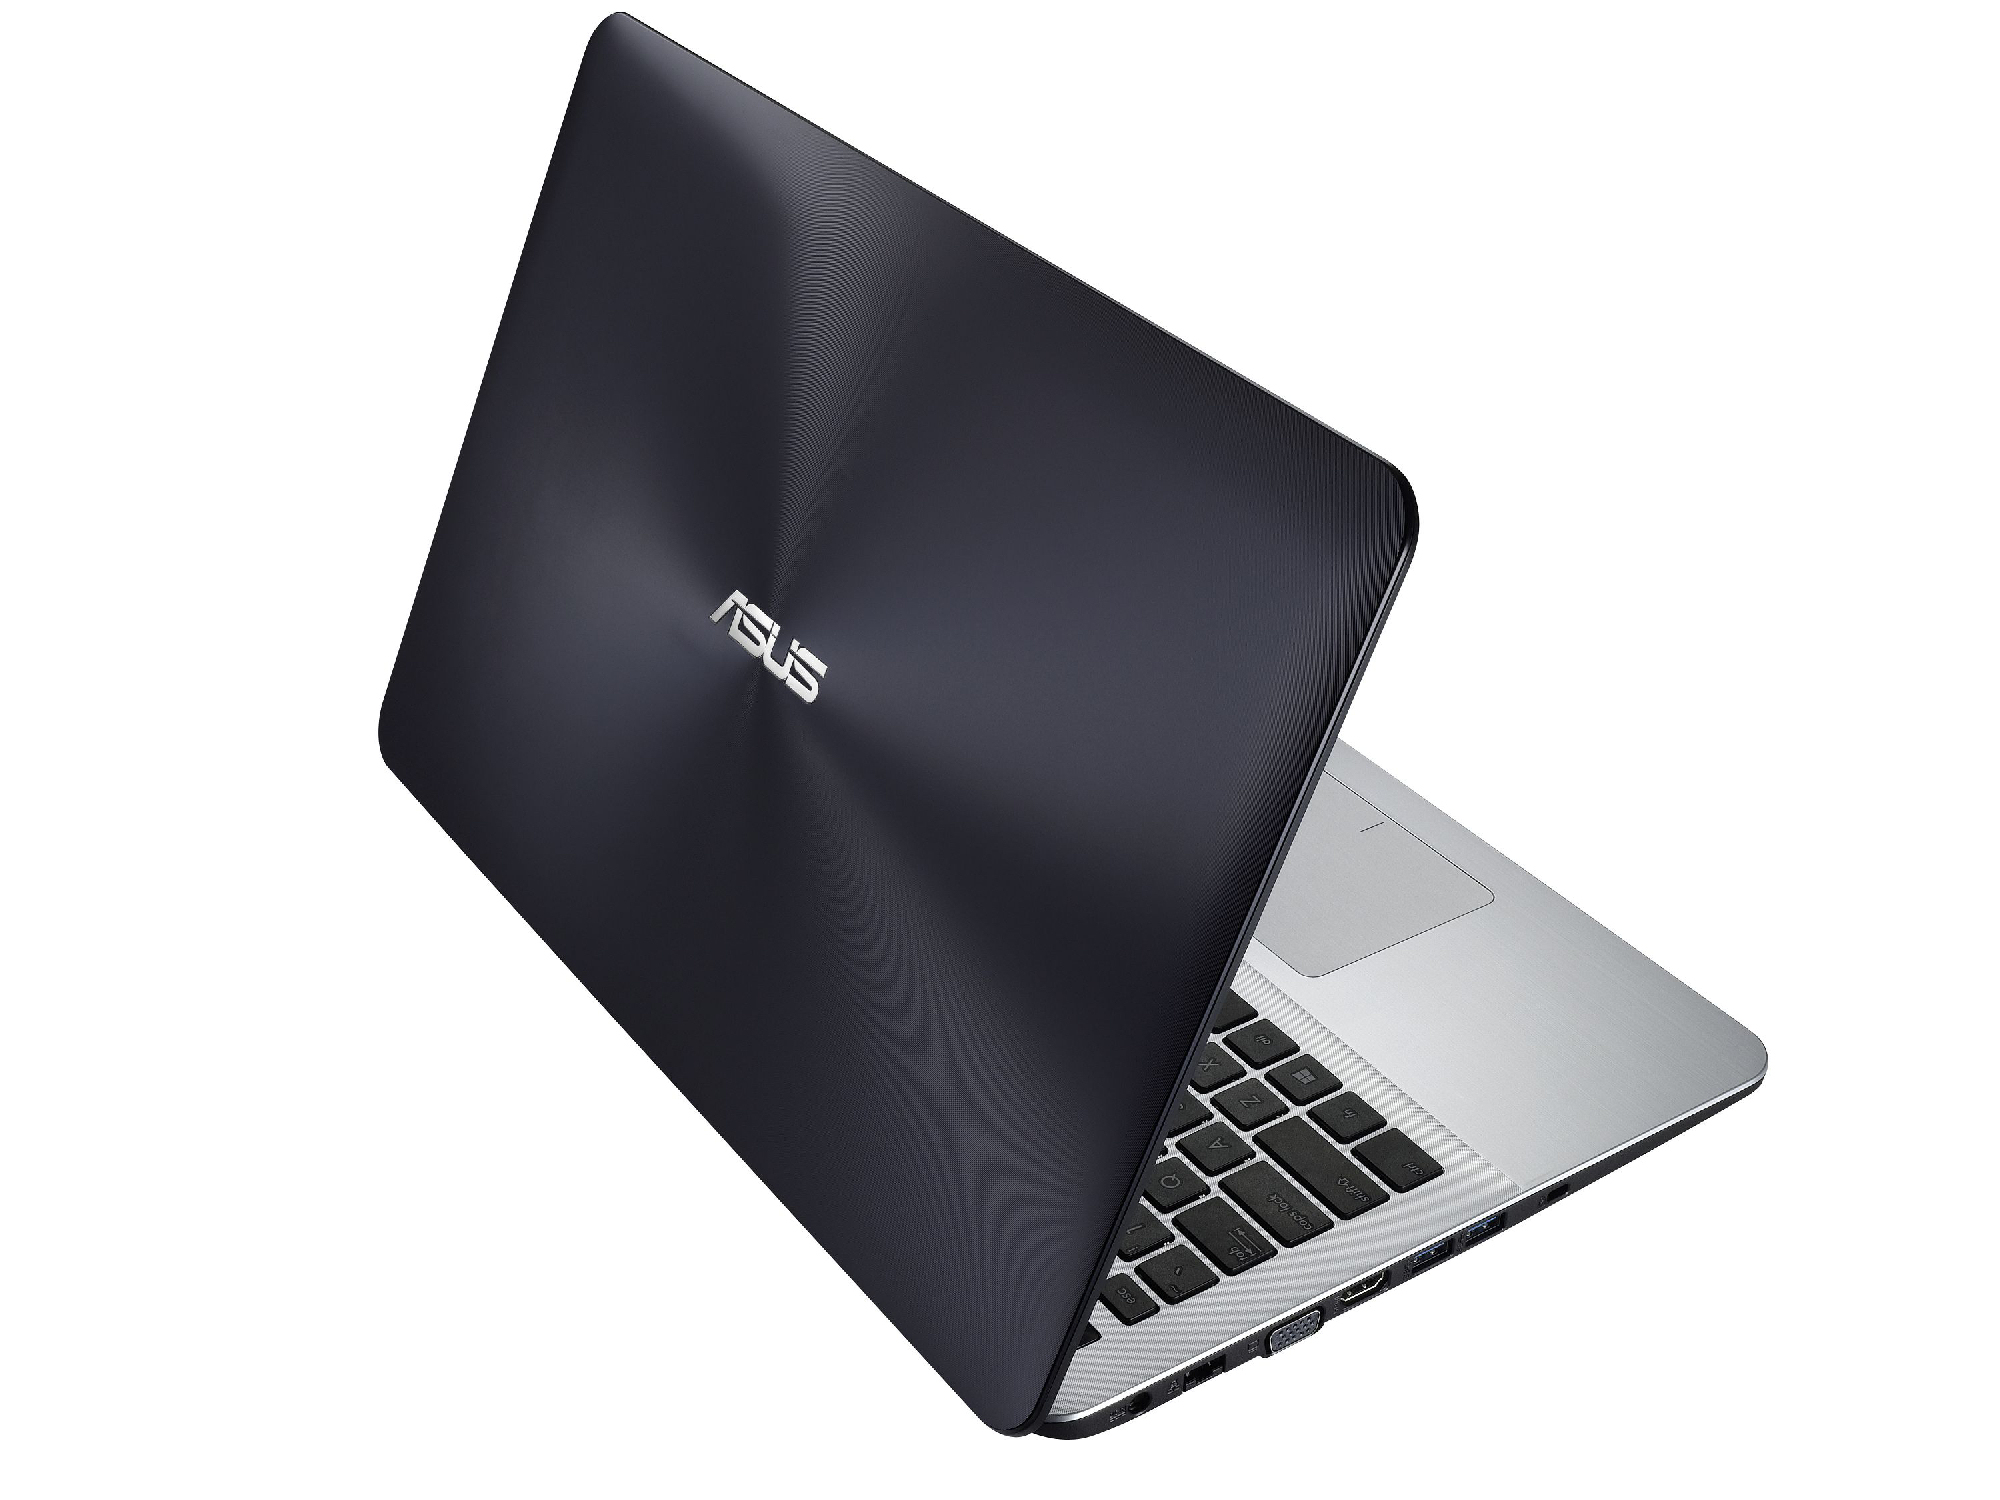 Asus F555UBXO043T Notebook Review NotebookChecknet Revie